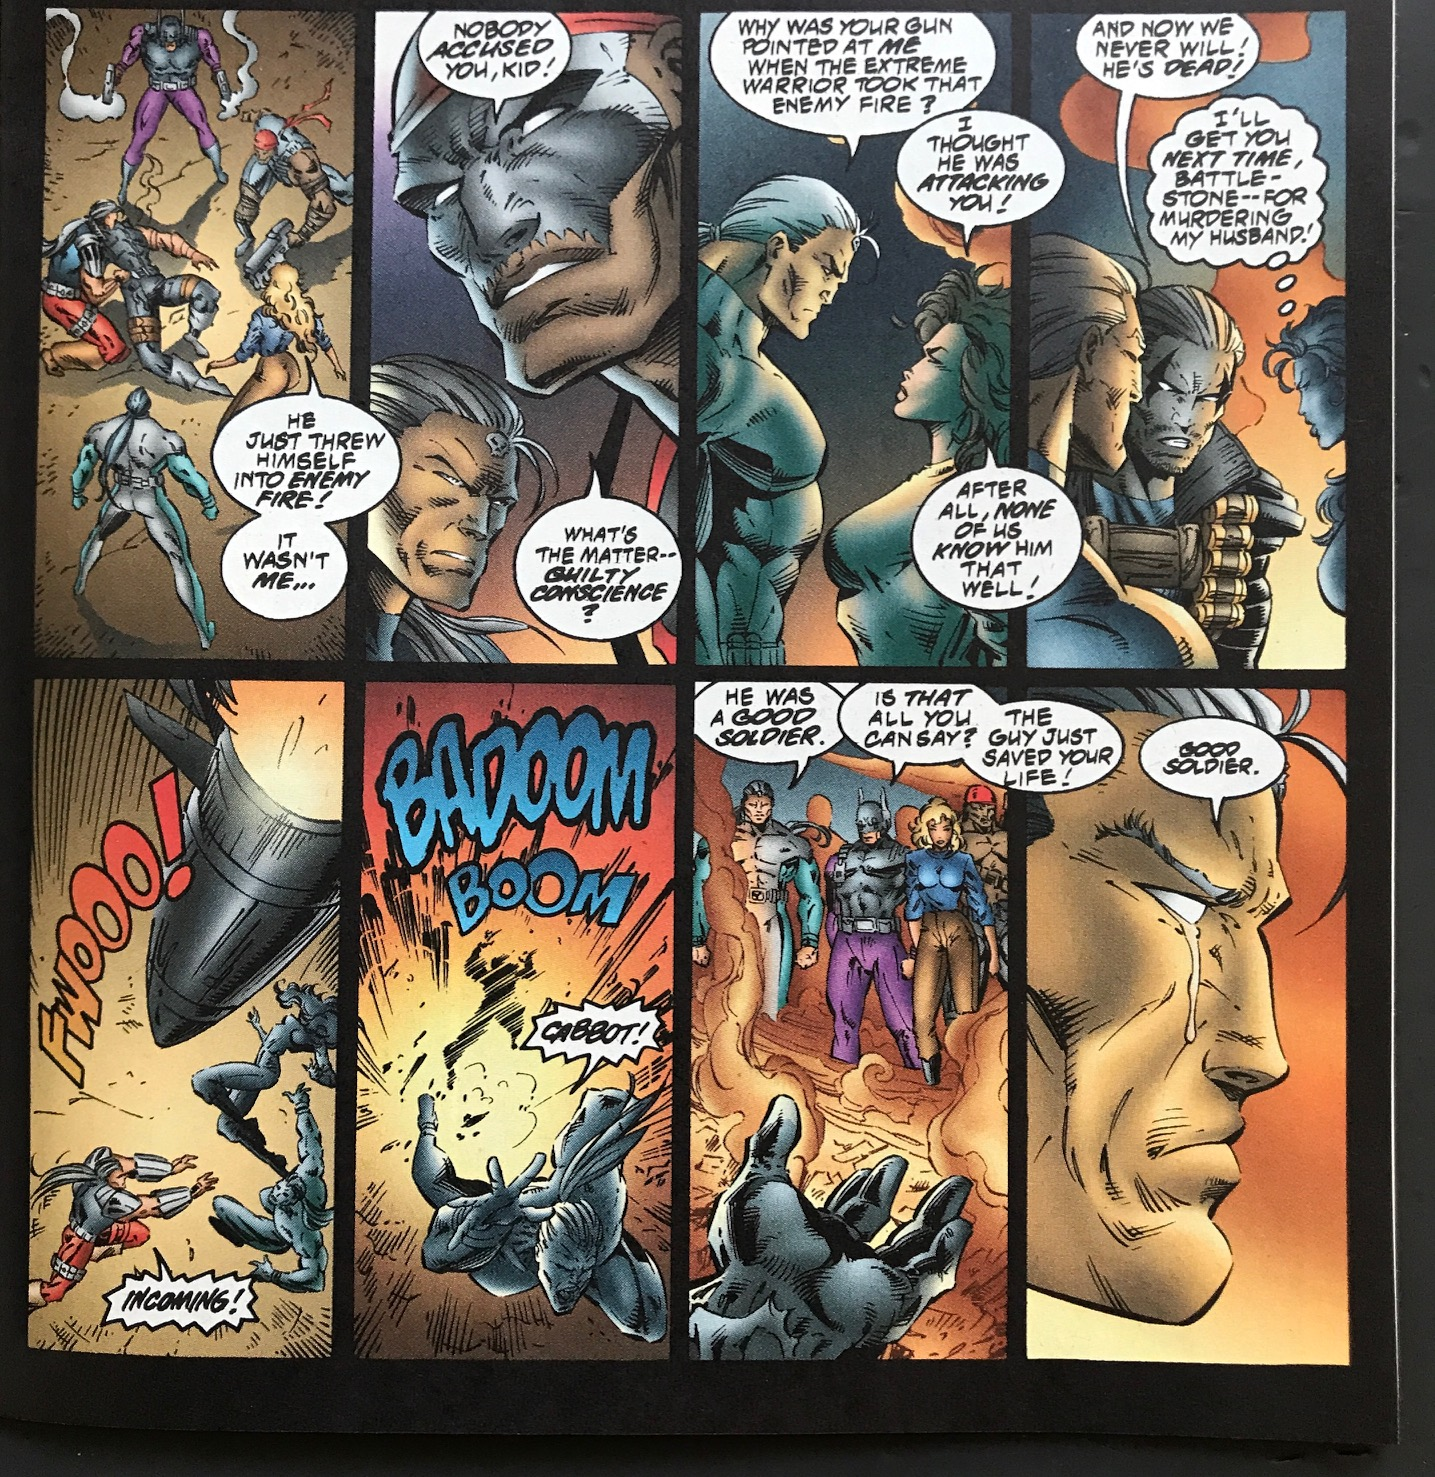 KNIGHTSTRIKE Issue #1 One Shot Extreme Destroyer Part 6 of 9 January 1996